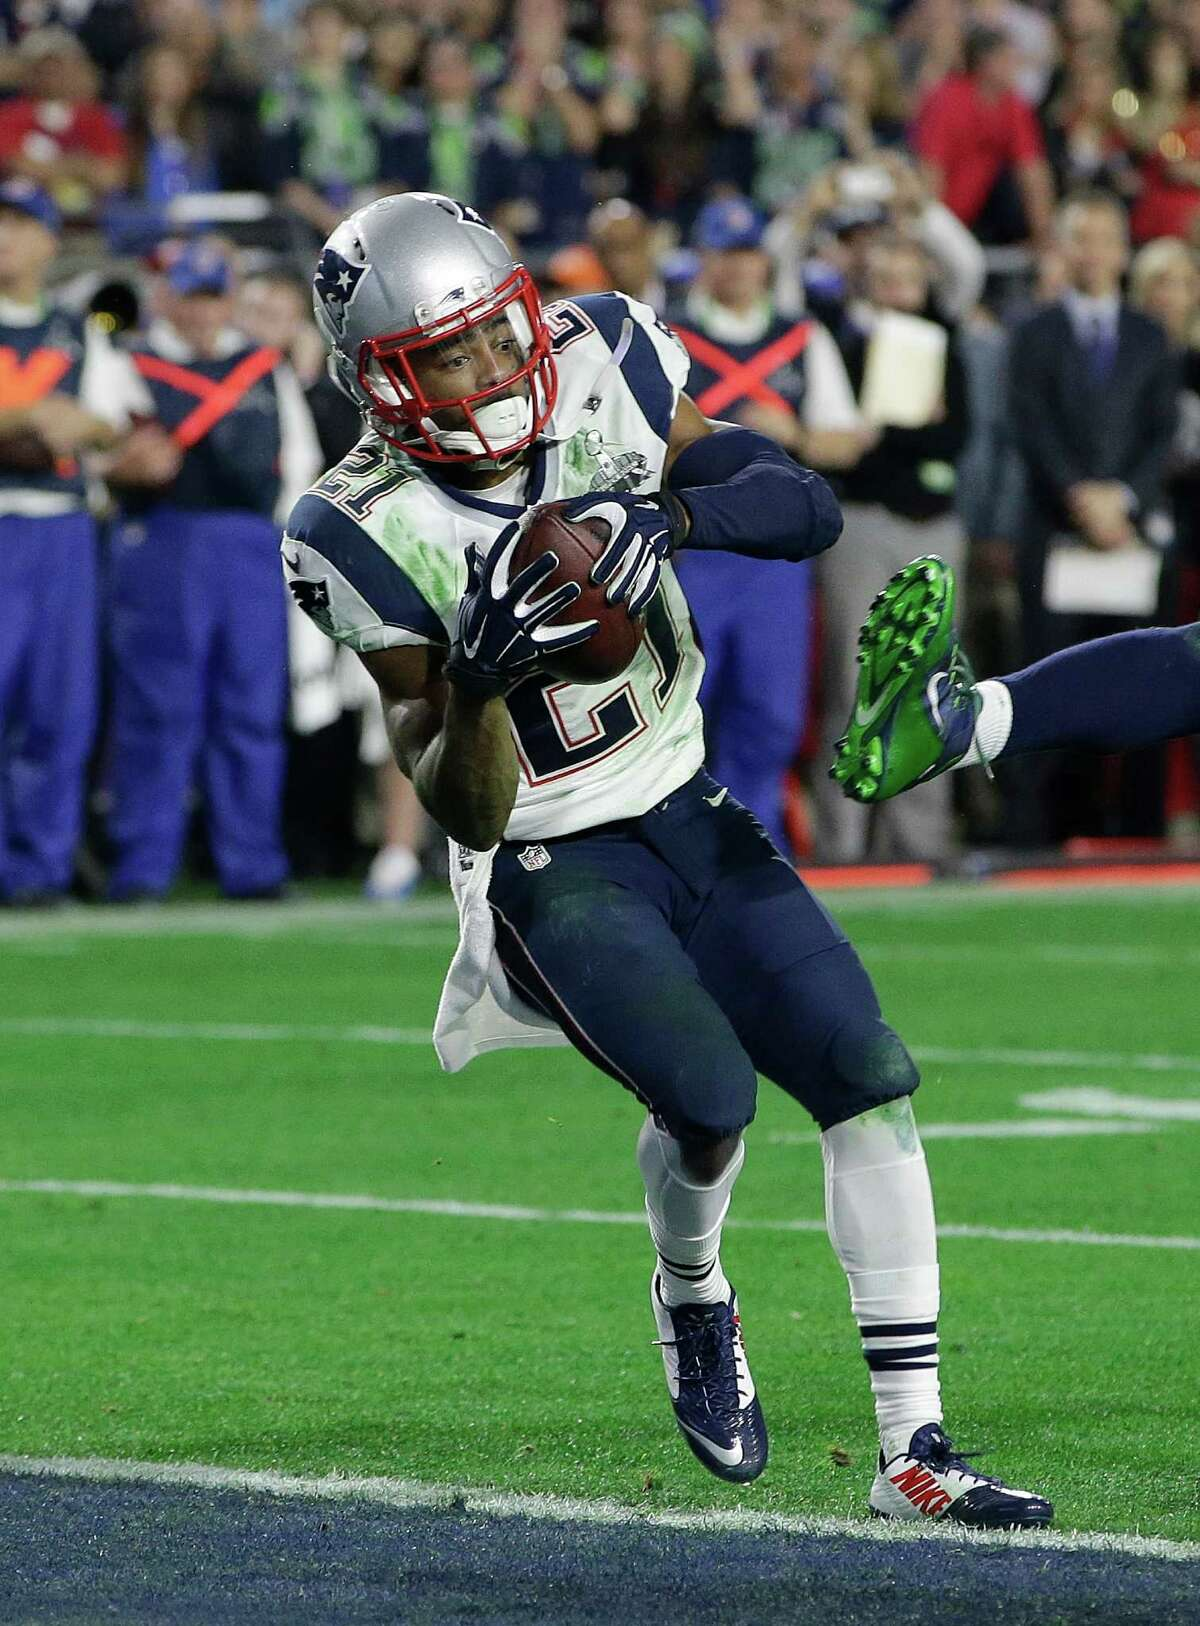 Before he was a Super Bowl hero, the Patriots' Malcolm Butler traveled a path that included being unrated by Rivals.com coming out of high school, then playing at a junior college in Mississippi and at Division II West Alabama before going undrafted.